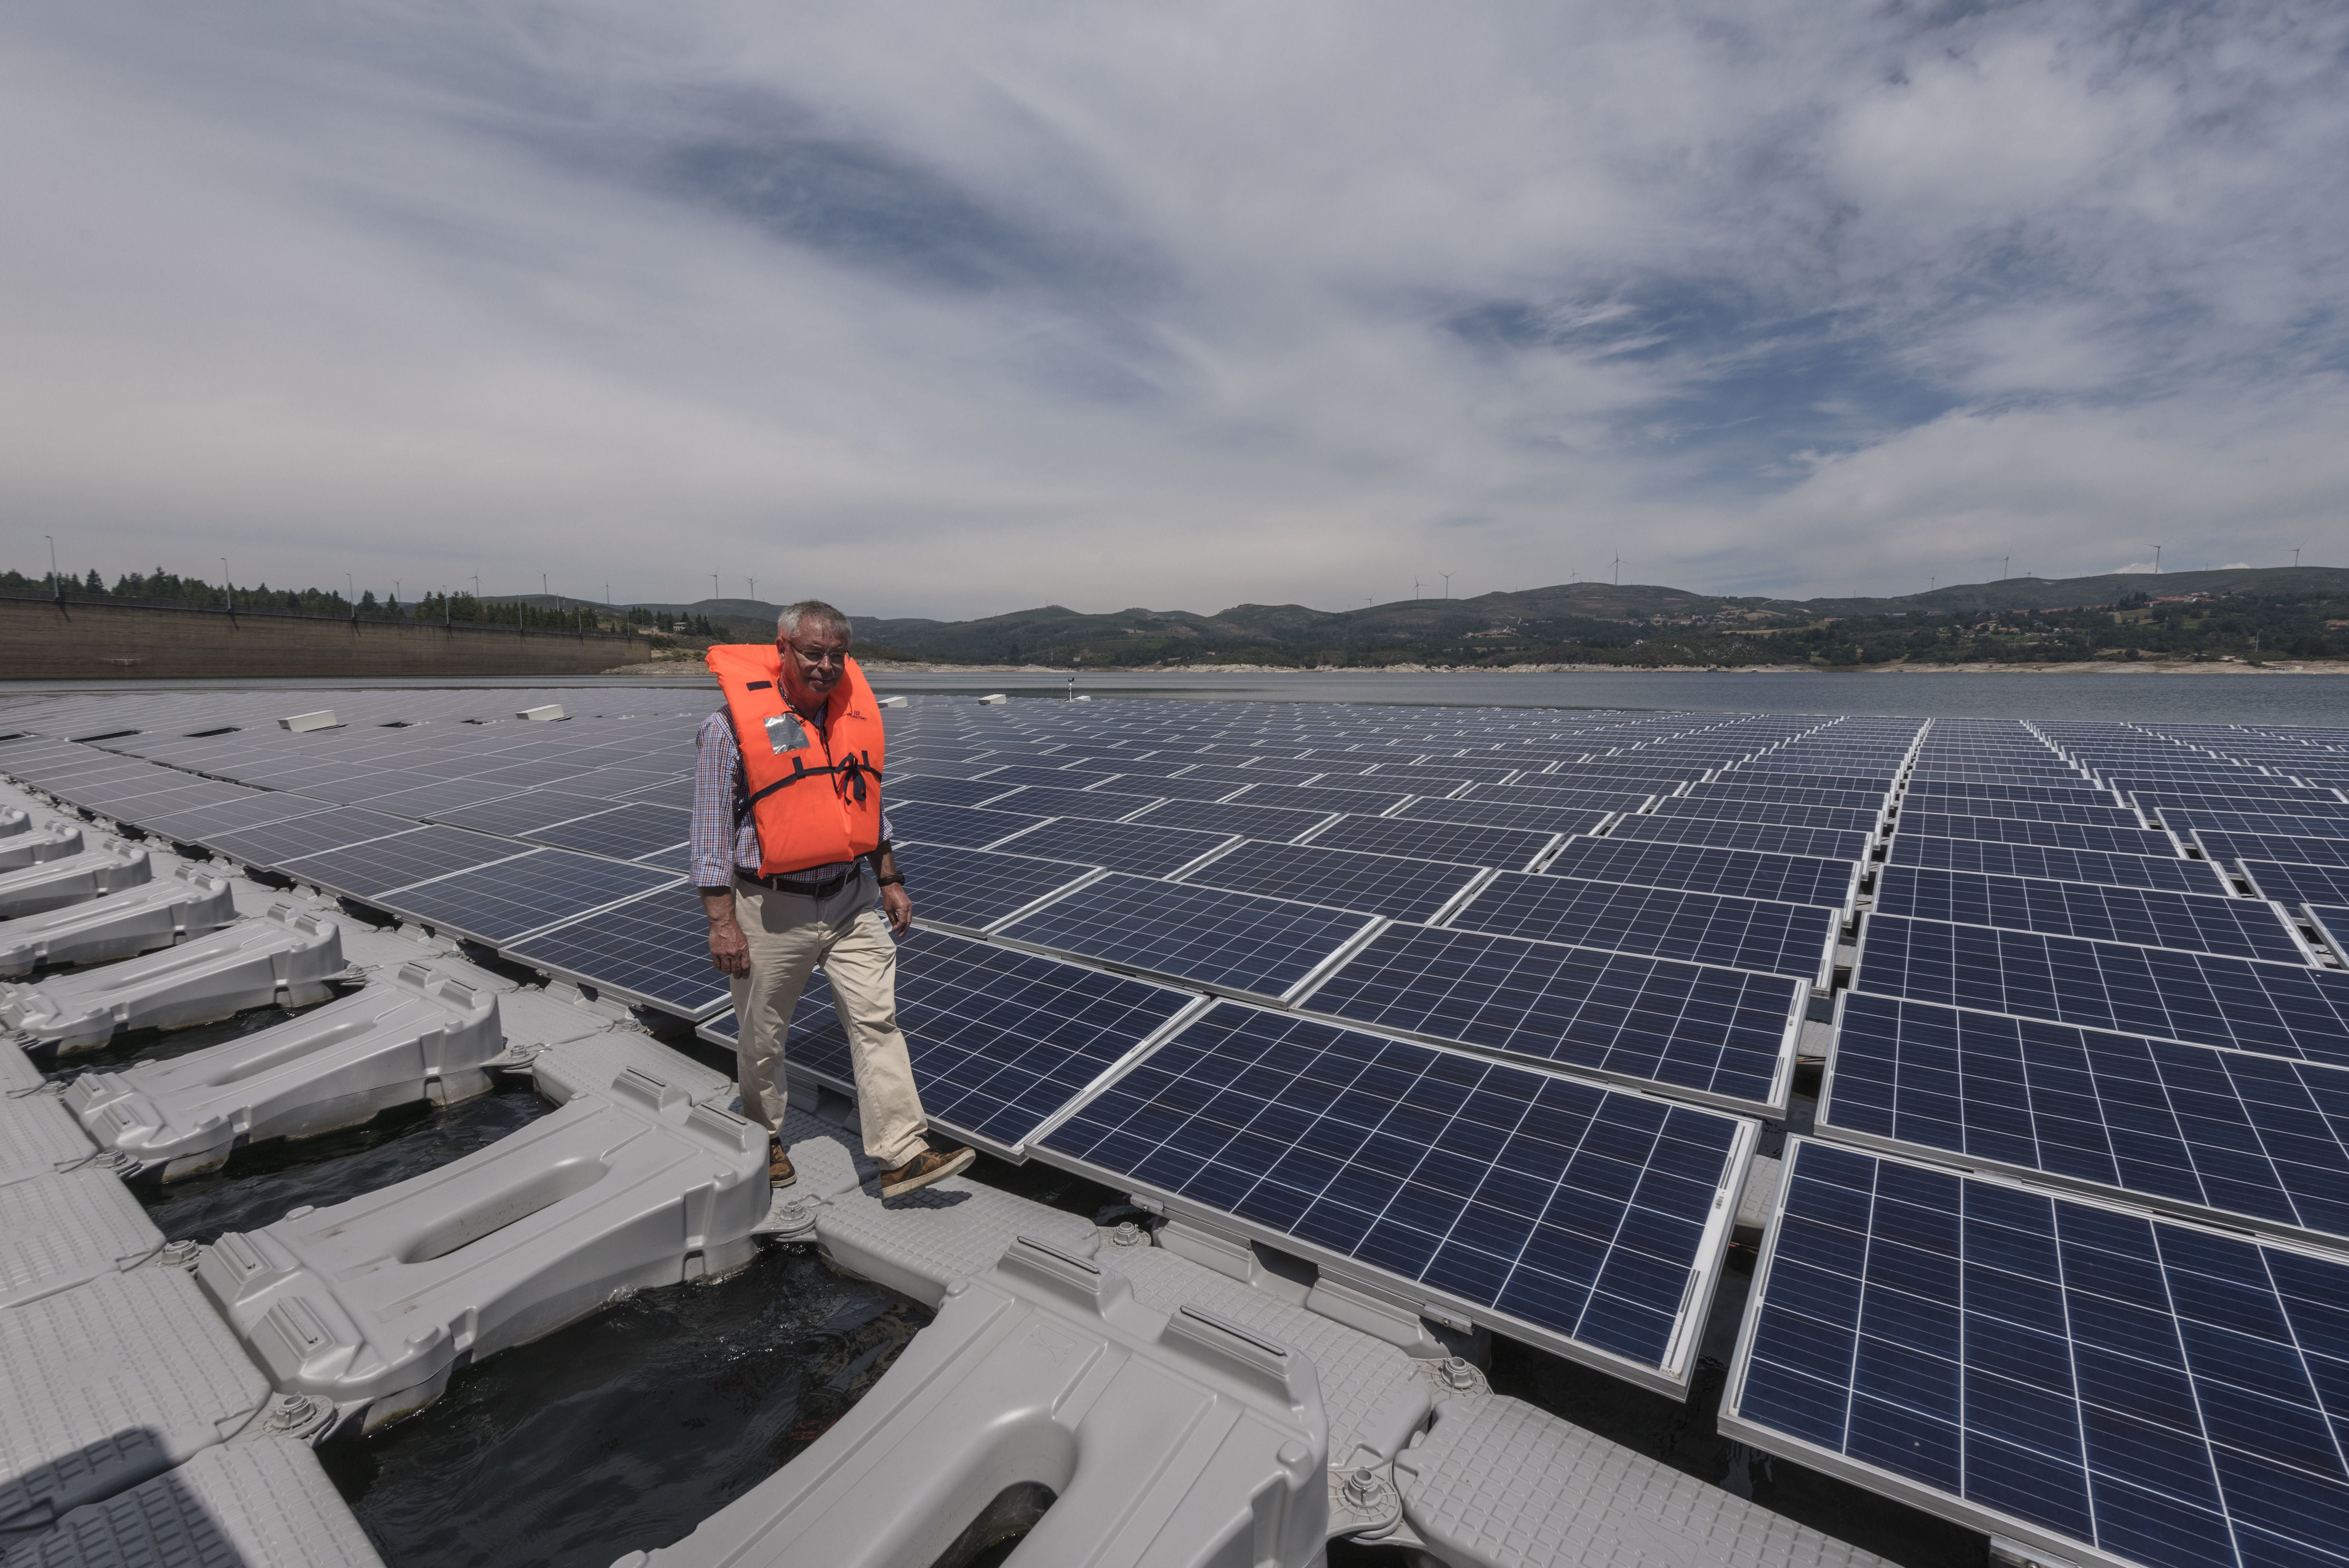 The World S First Power Plant To Combine Hydro And Solar Opens In Portugal Solar Solar Power Plant Solar Power Station